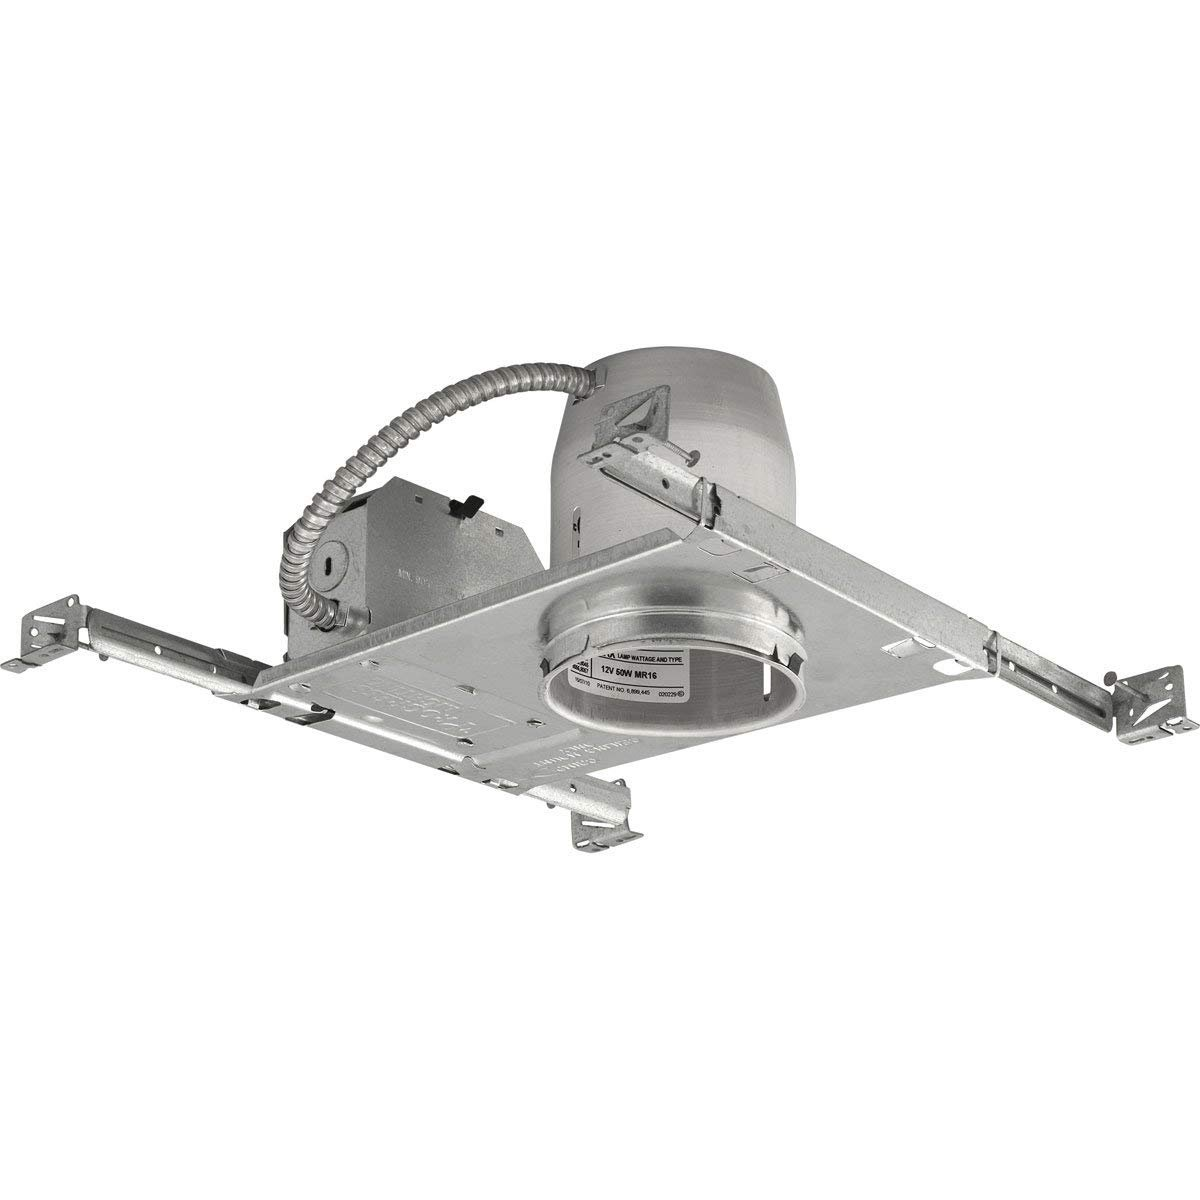 Progress Lighting P830-TG for New Construction or Remodel Work UL/CUL Listed, 1/2-Inch and 3/4-Inch Pryouts